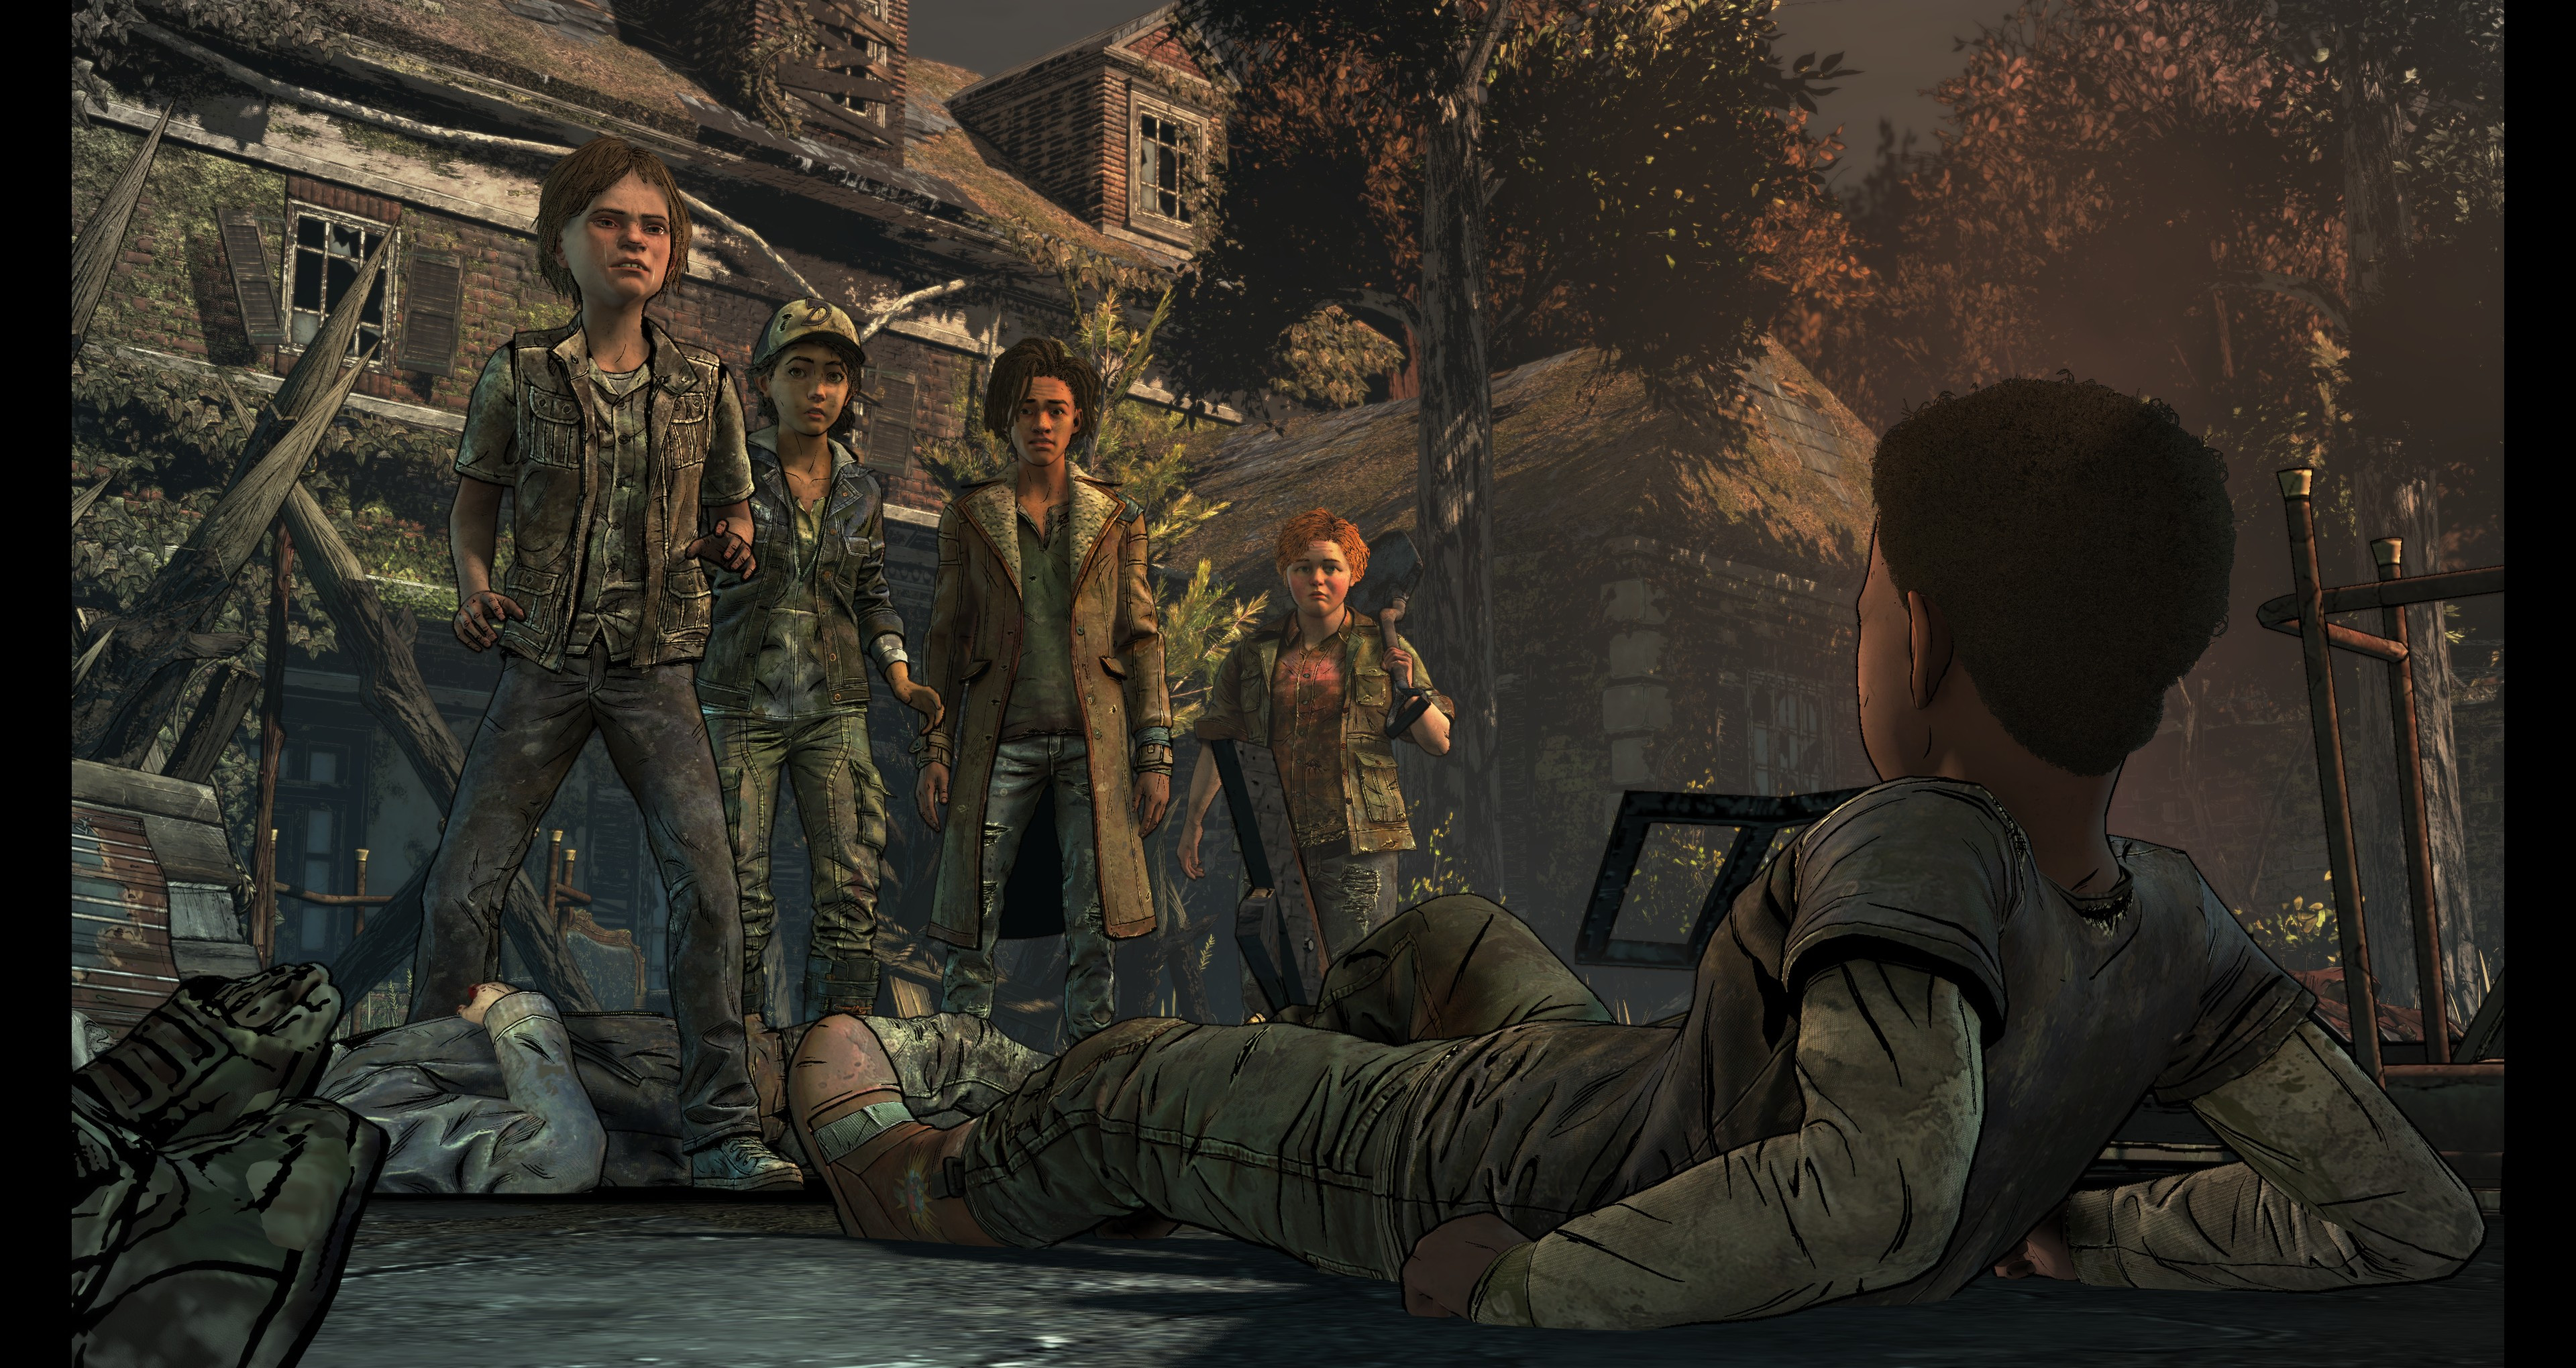 Click image for larger version  Name:	TWD_The_Final_Season_Screens_5.jpg Views:	1 Size:	2.01 MB ID:	3492453